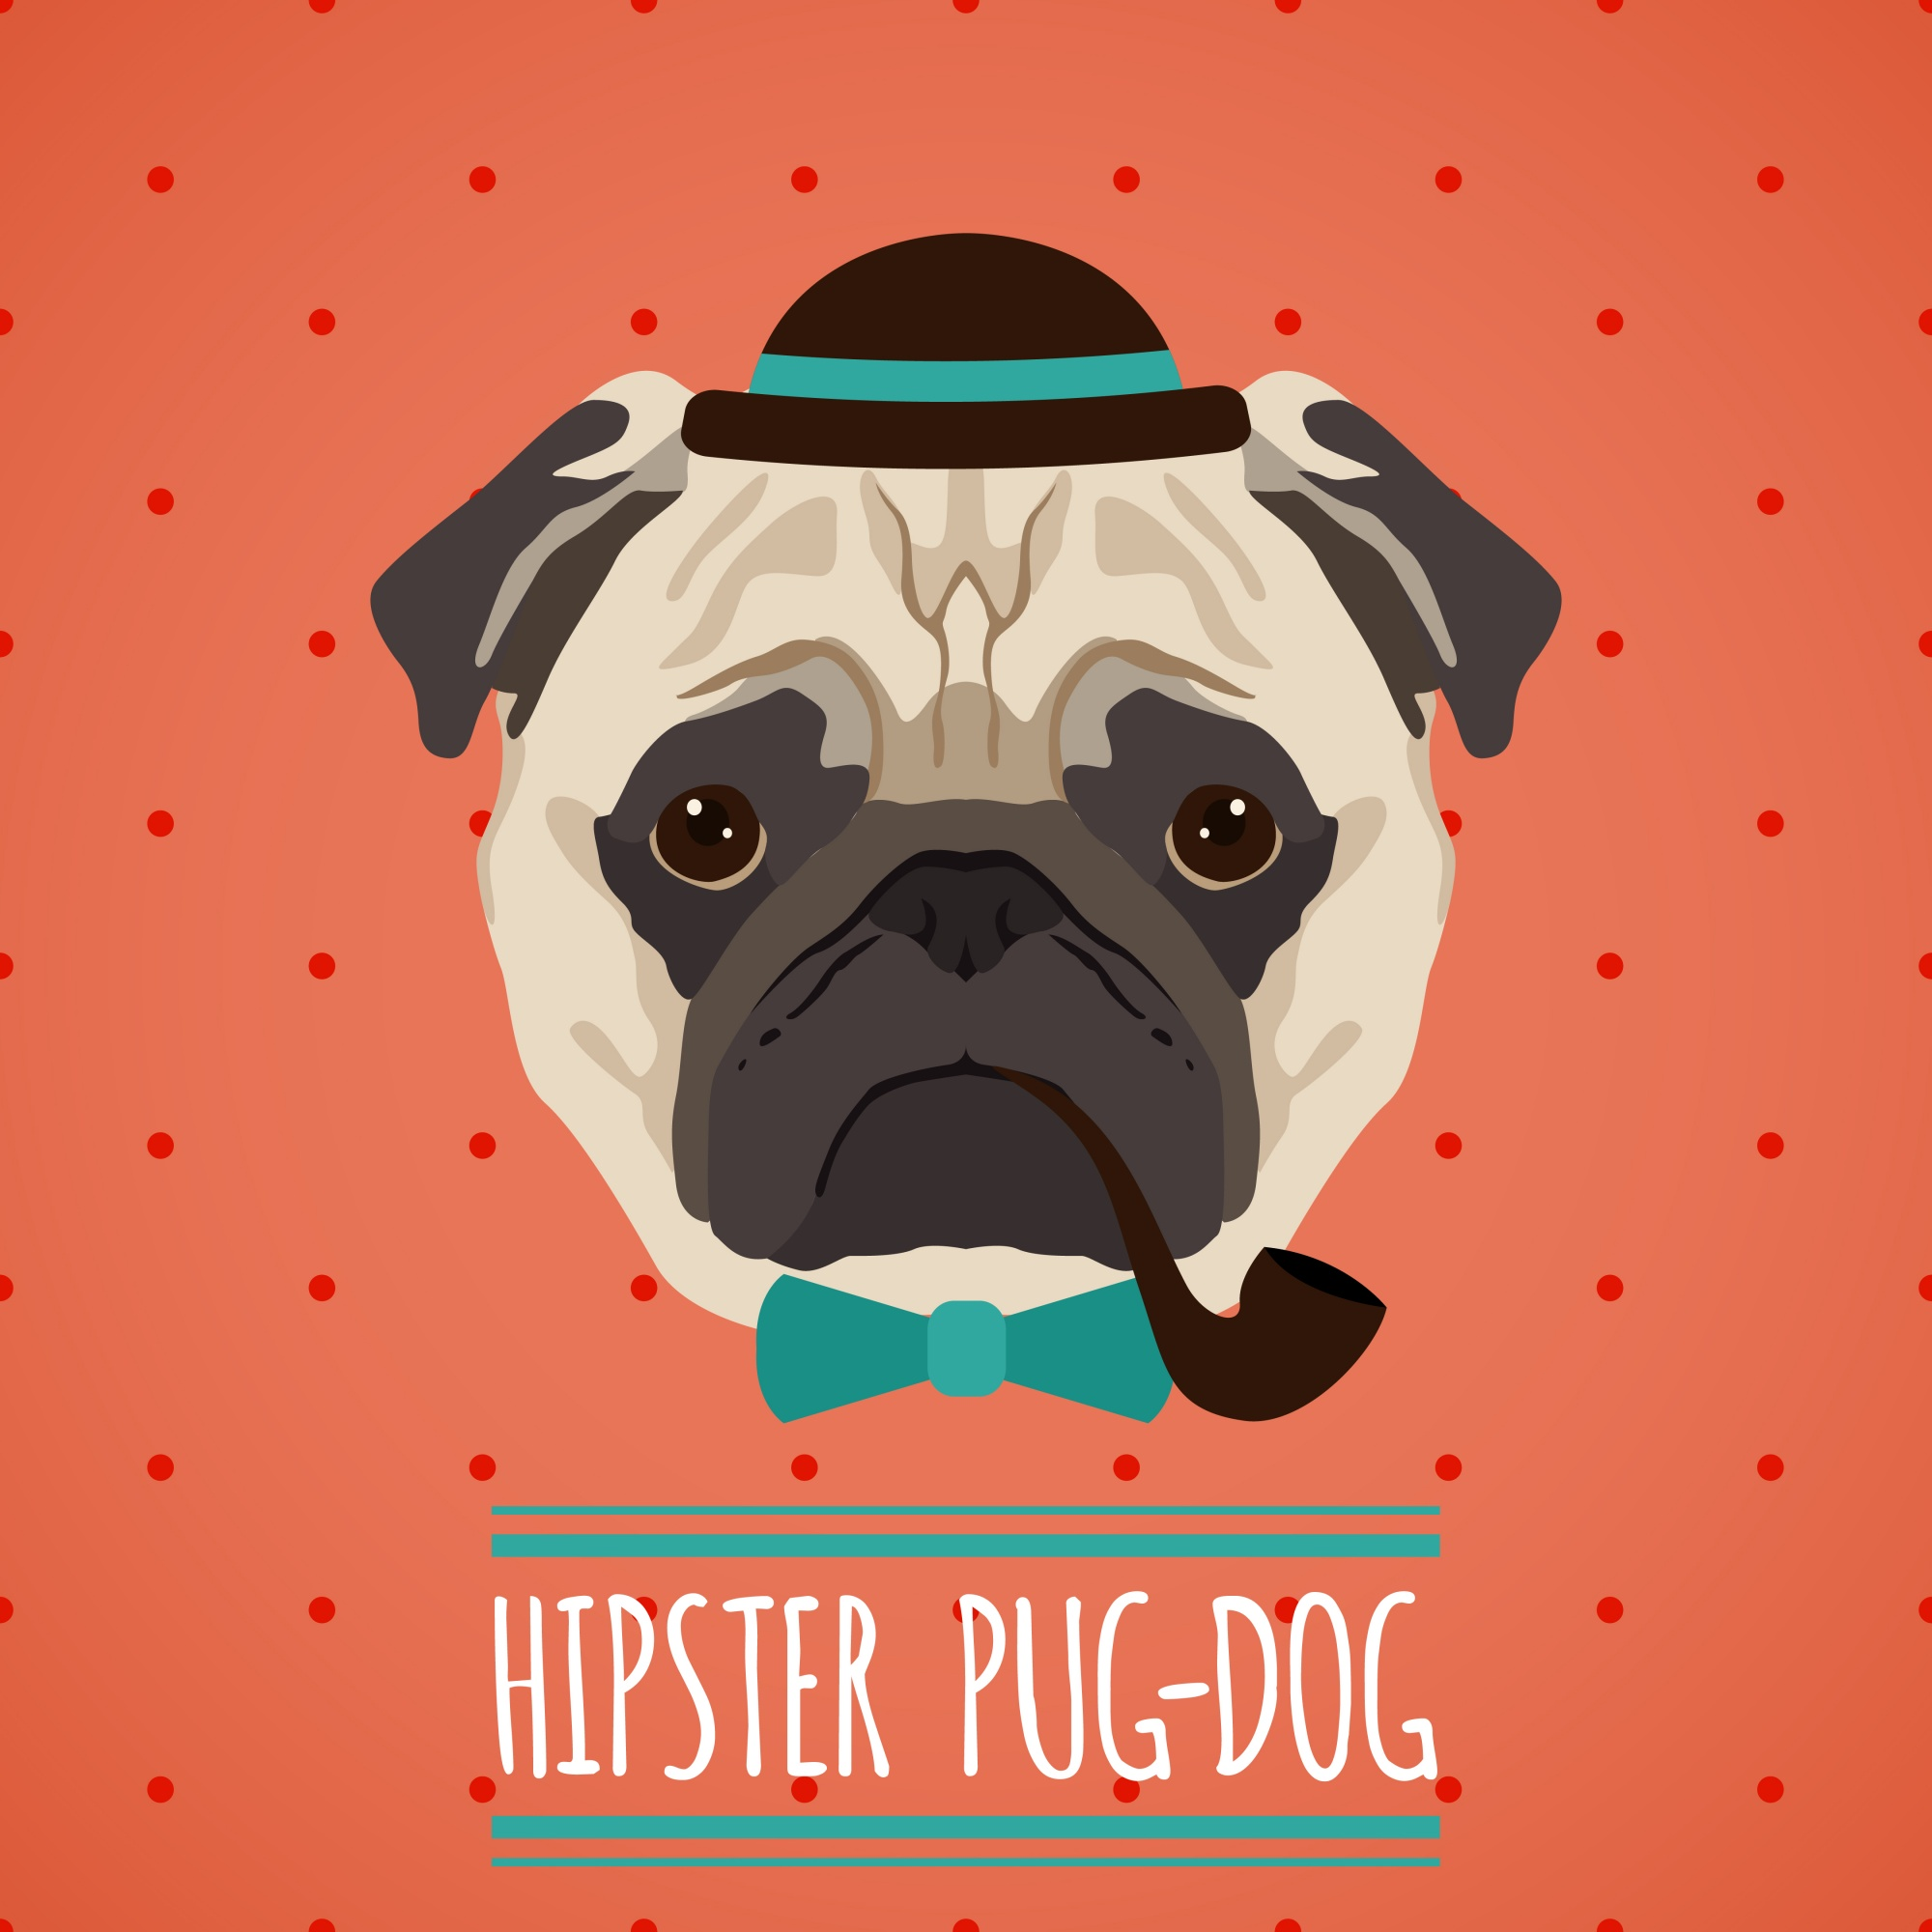 Hipster pug dog with hat smoking pipe and bow tie portrait with ribbon poster ilustração vetorial